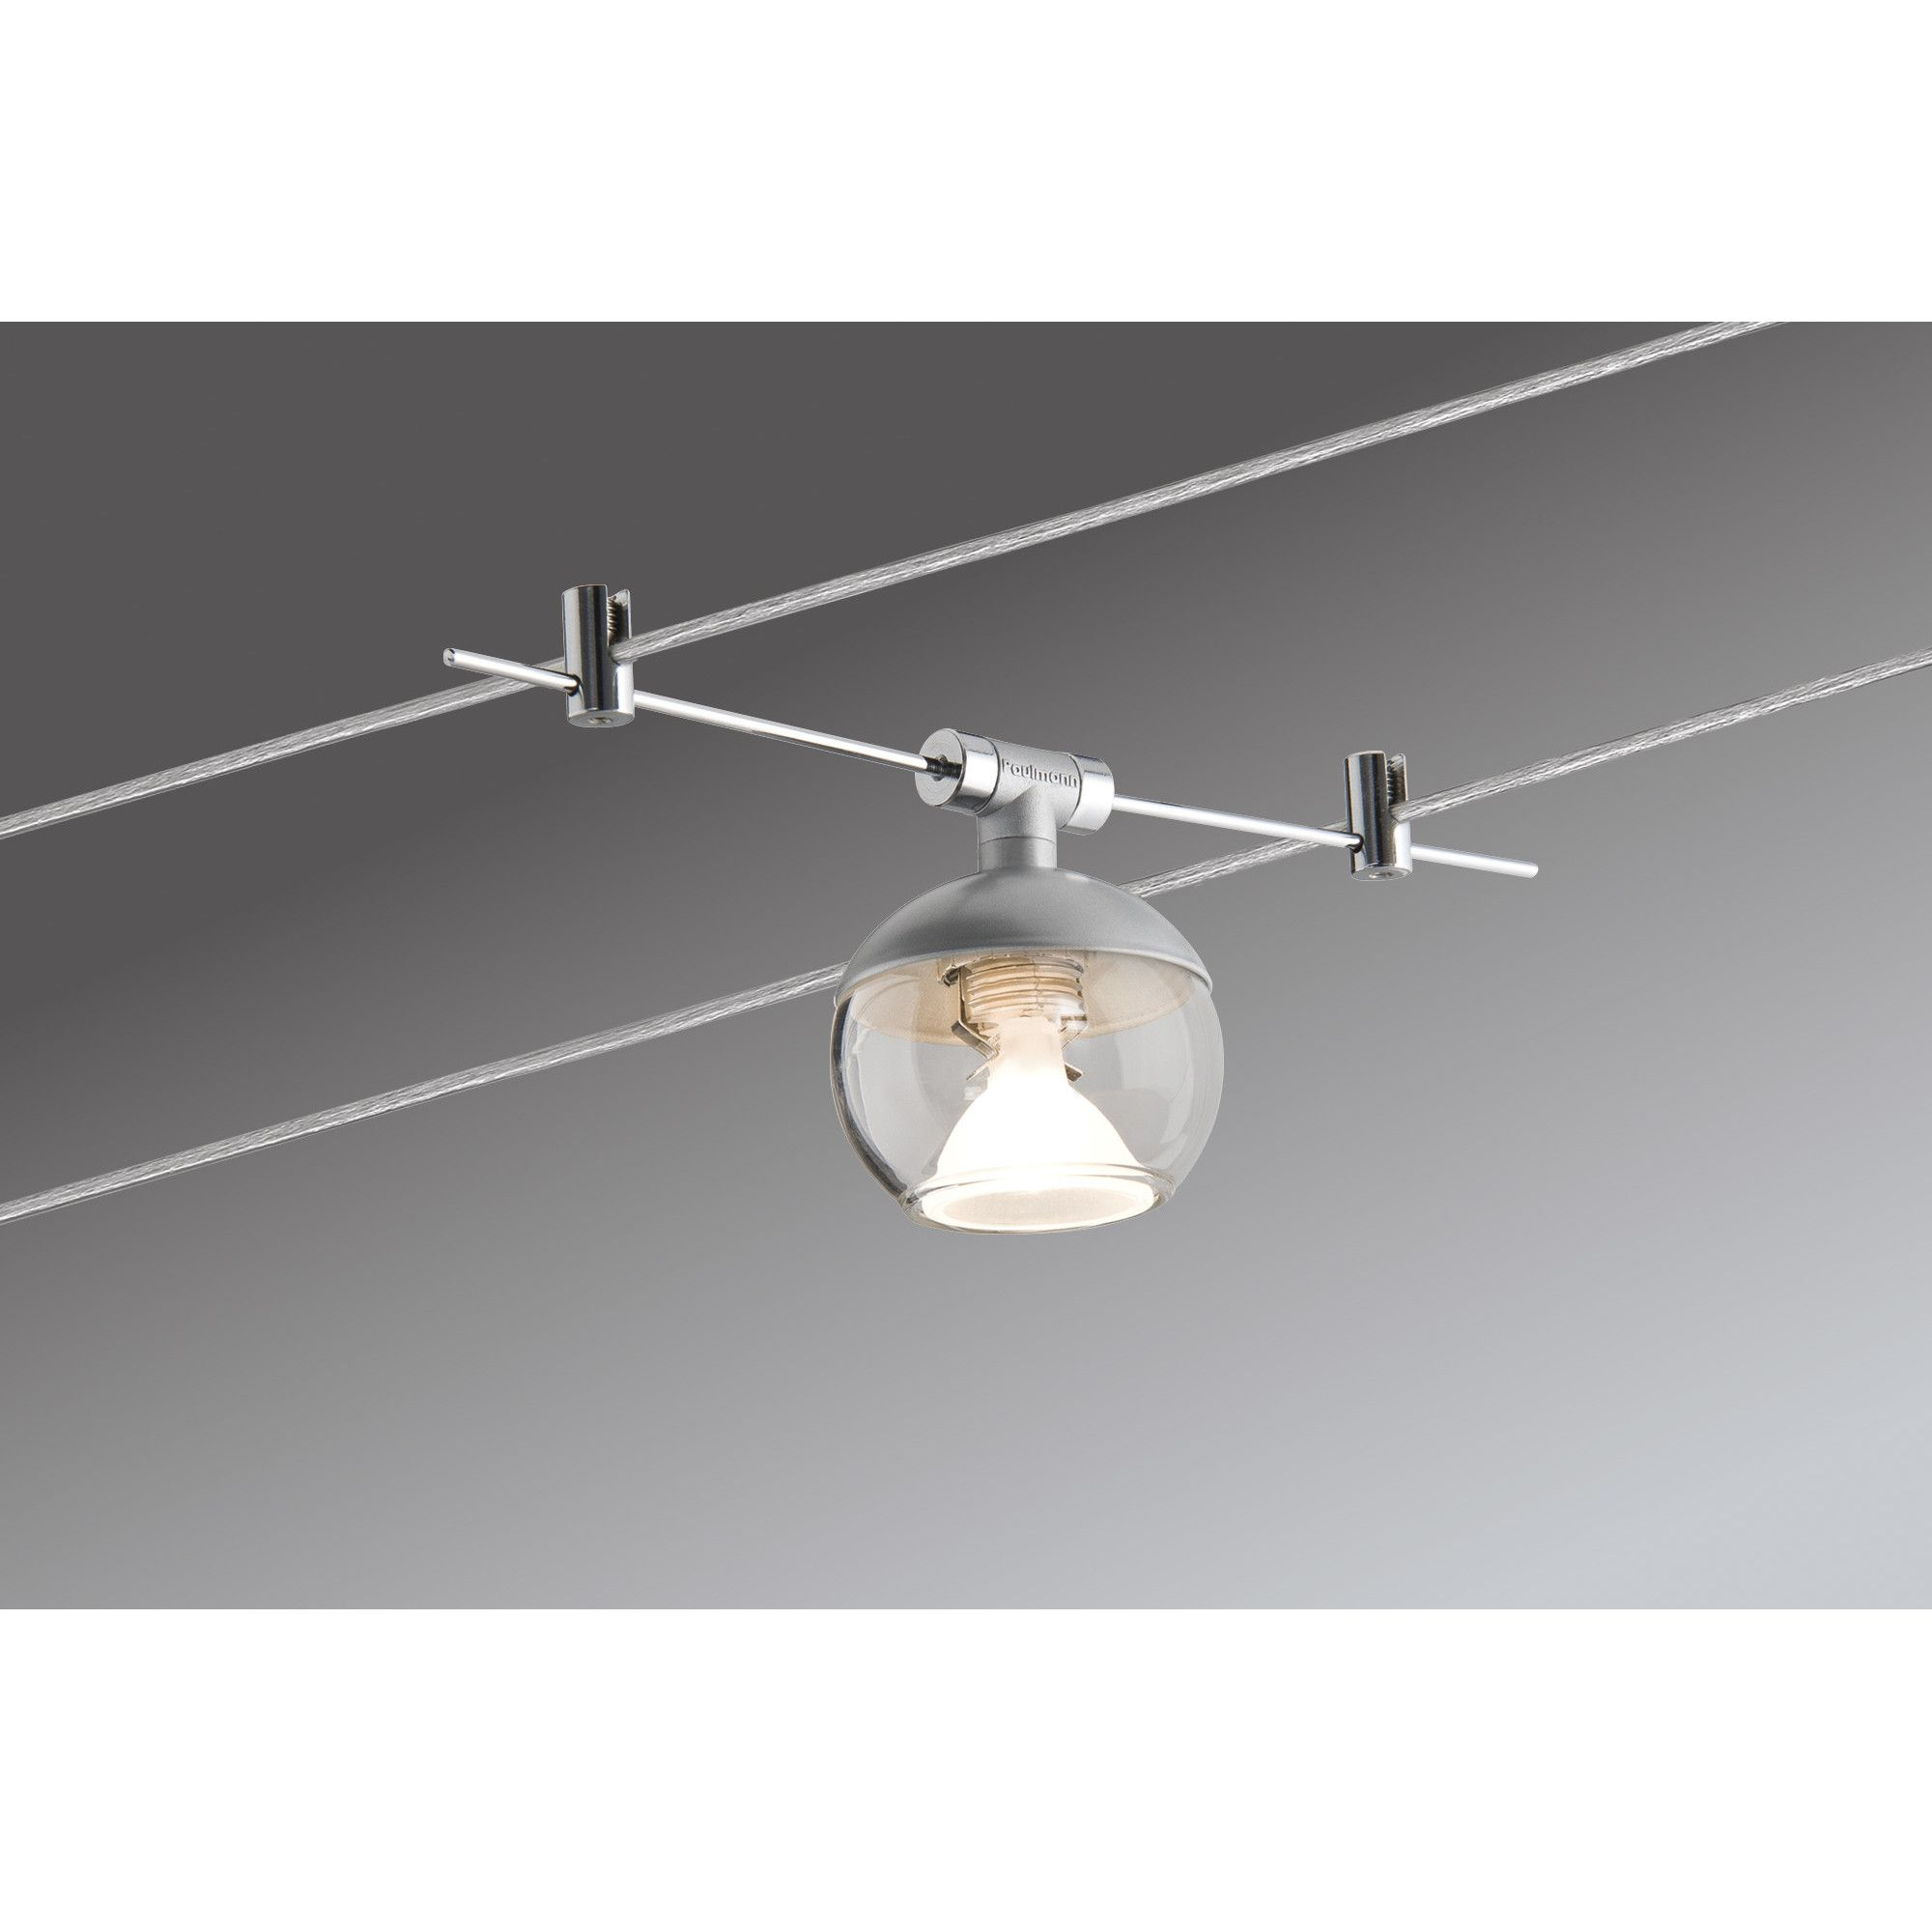 Paulmann Wire 12v 5 Light Globe System Lovely Lights Track Lighting Without Wiring